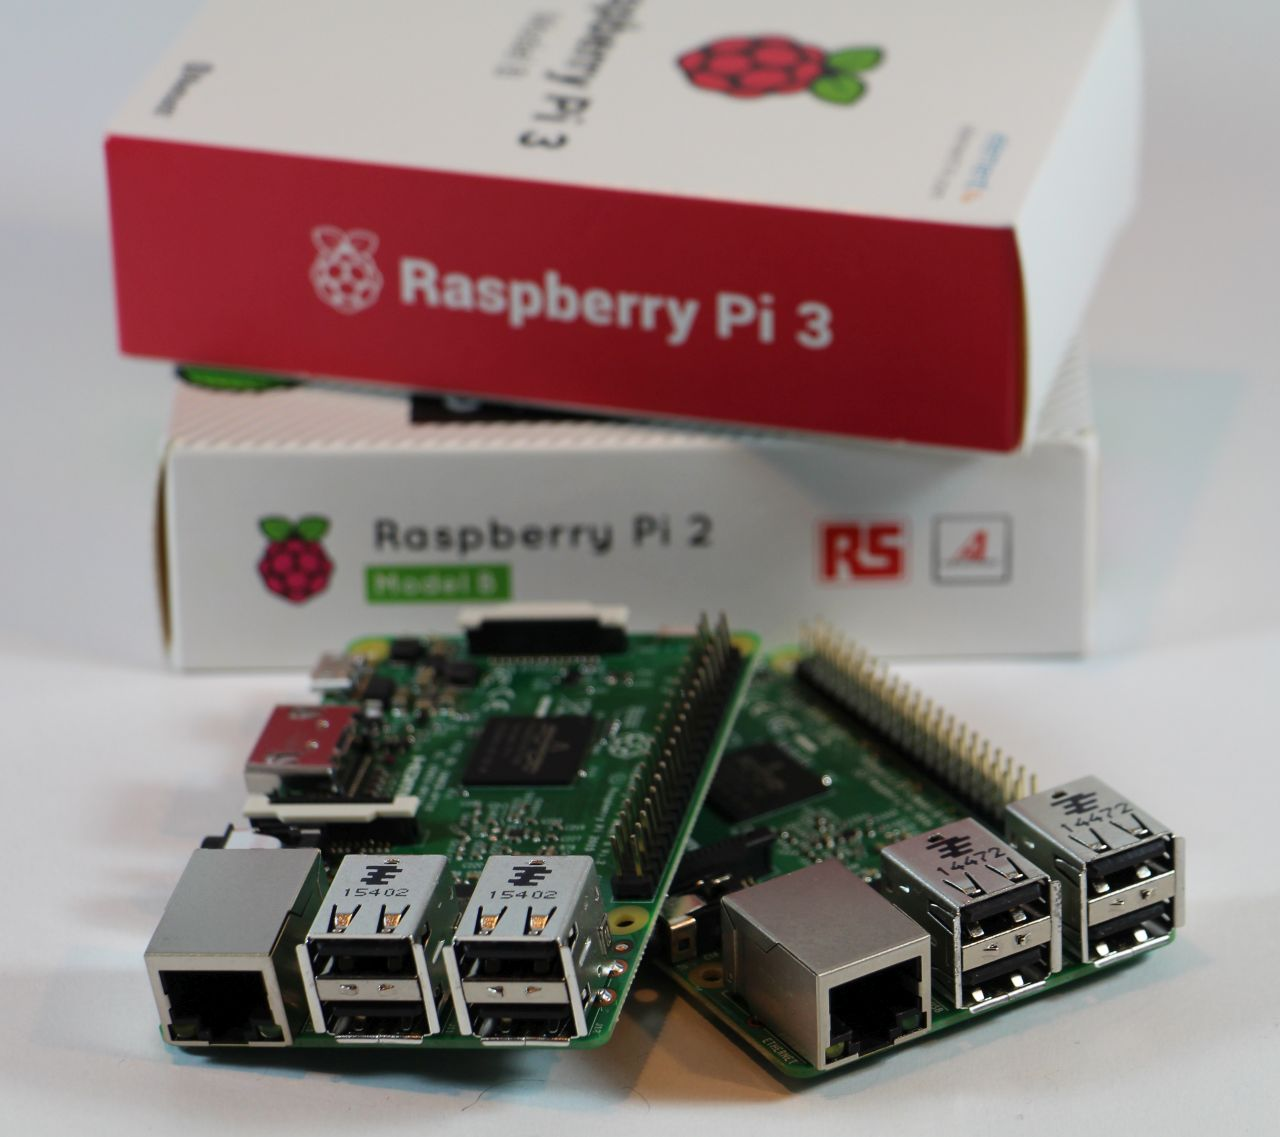 Raspberry Pi 3 and 2 boards